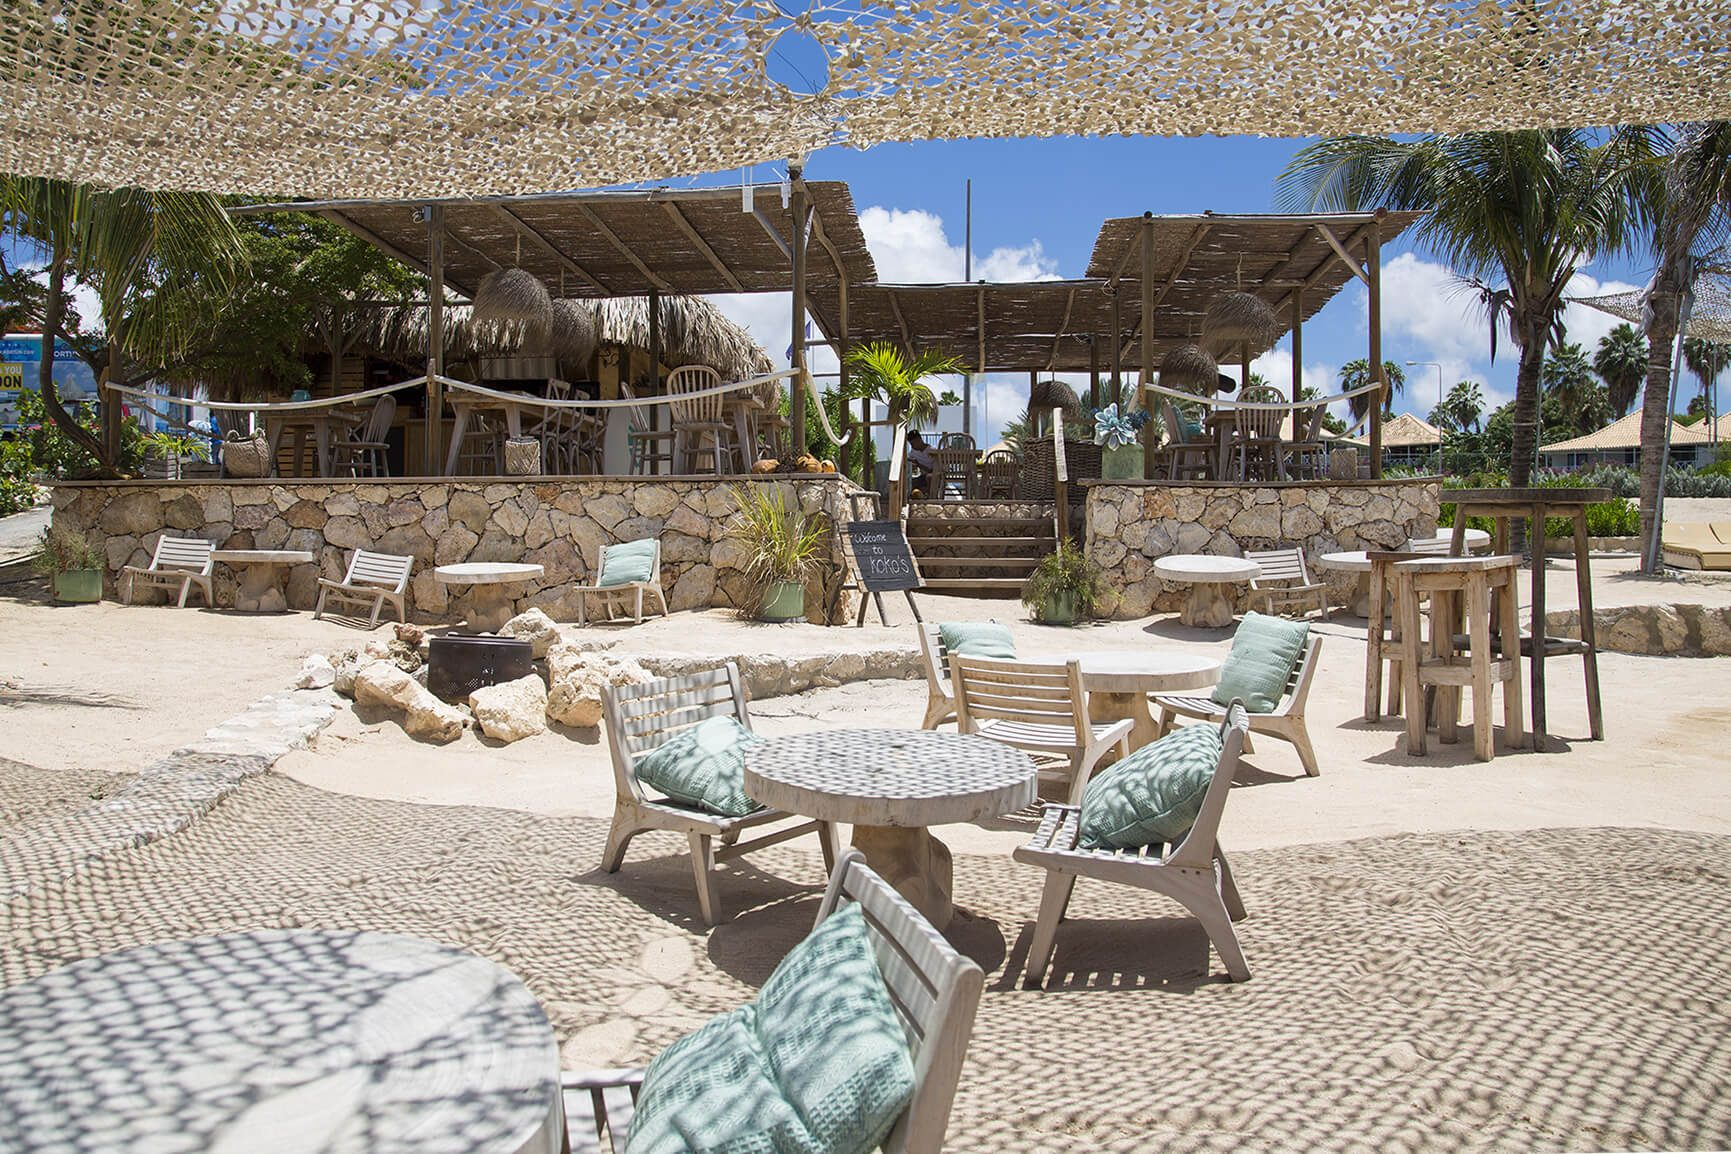 The Jan Thiel Area with plenty of sun, sea, relaxing atmosphere, and all the delicious food.